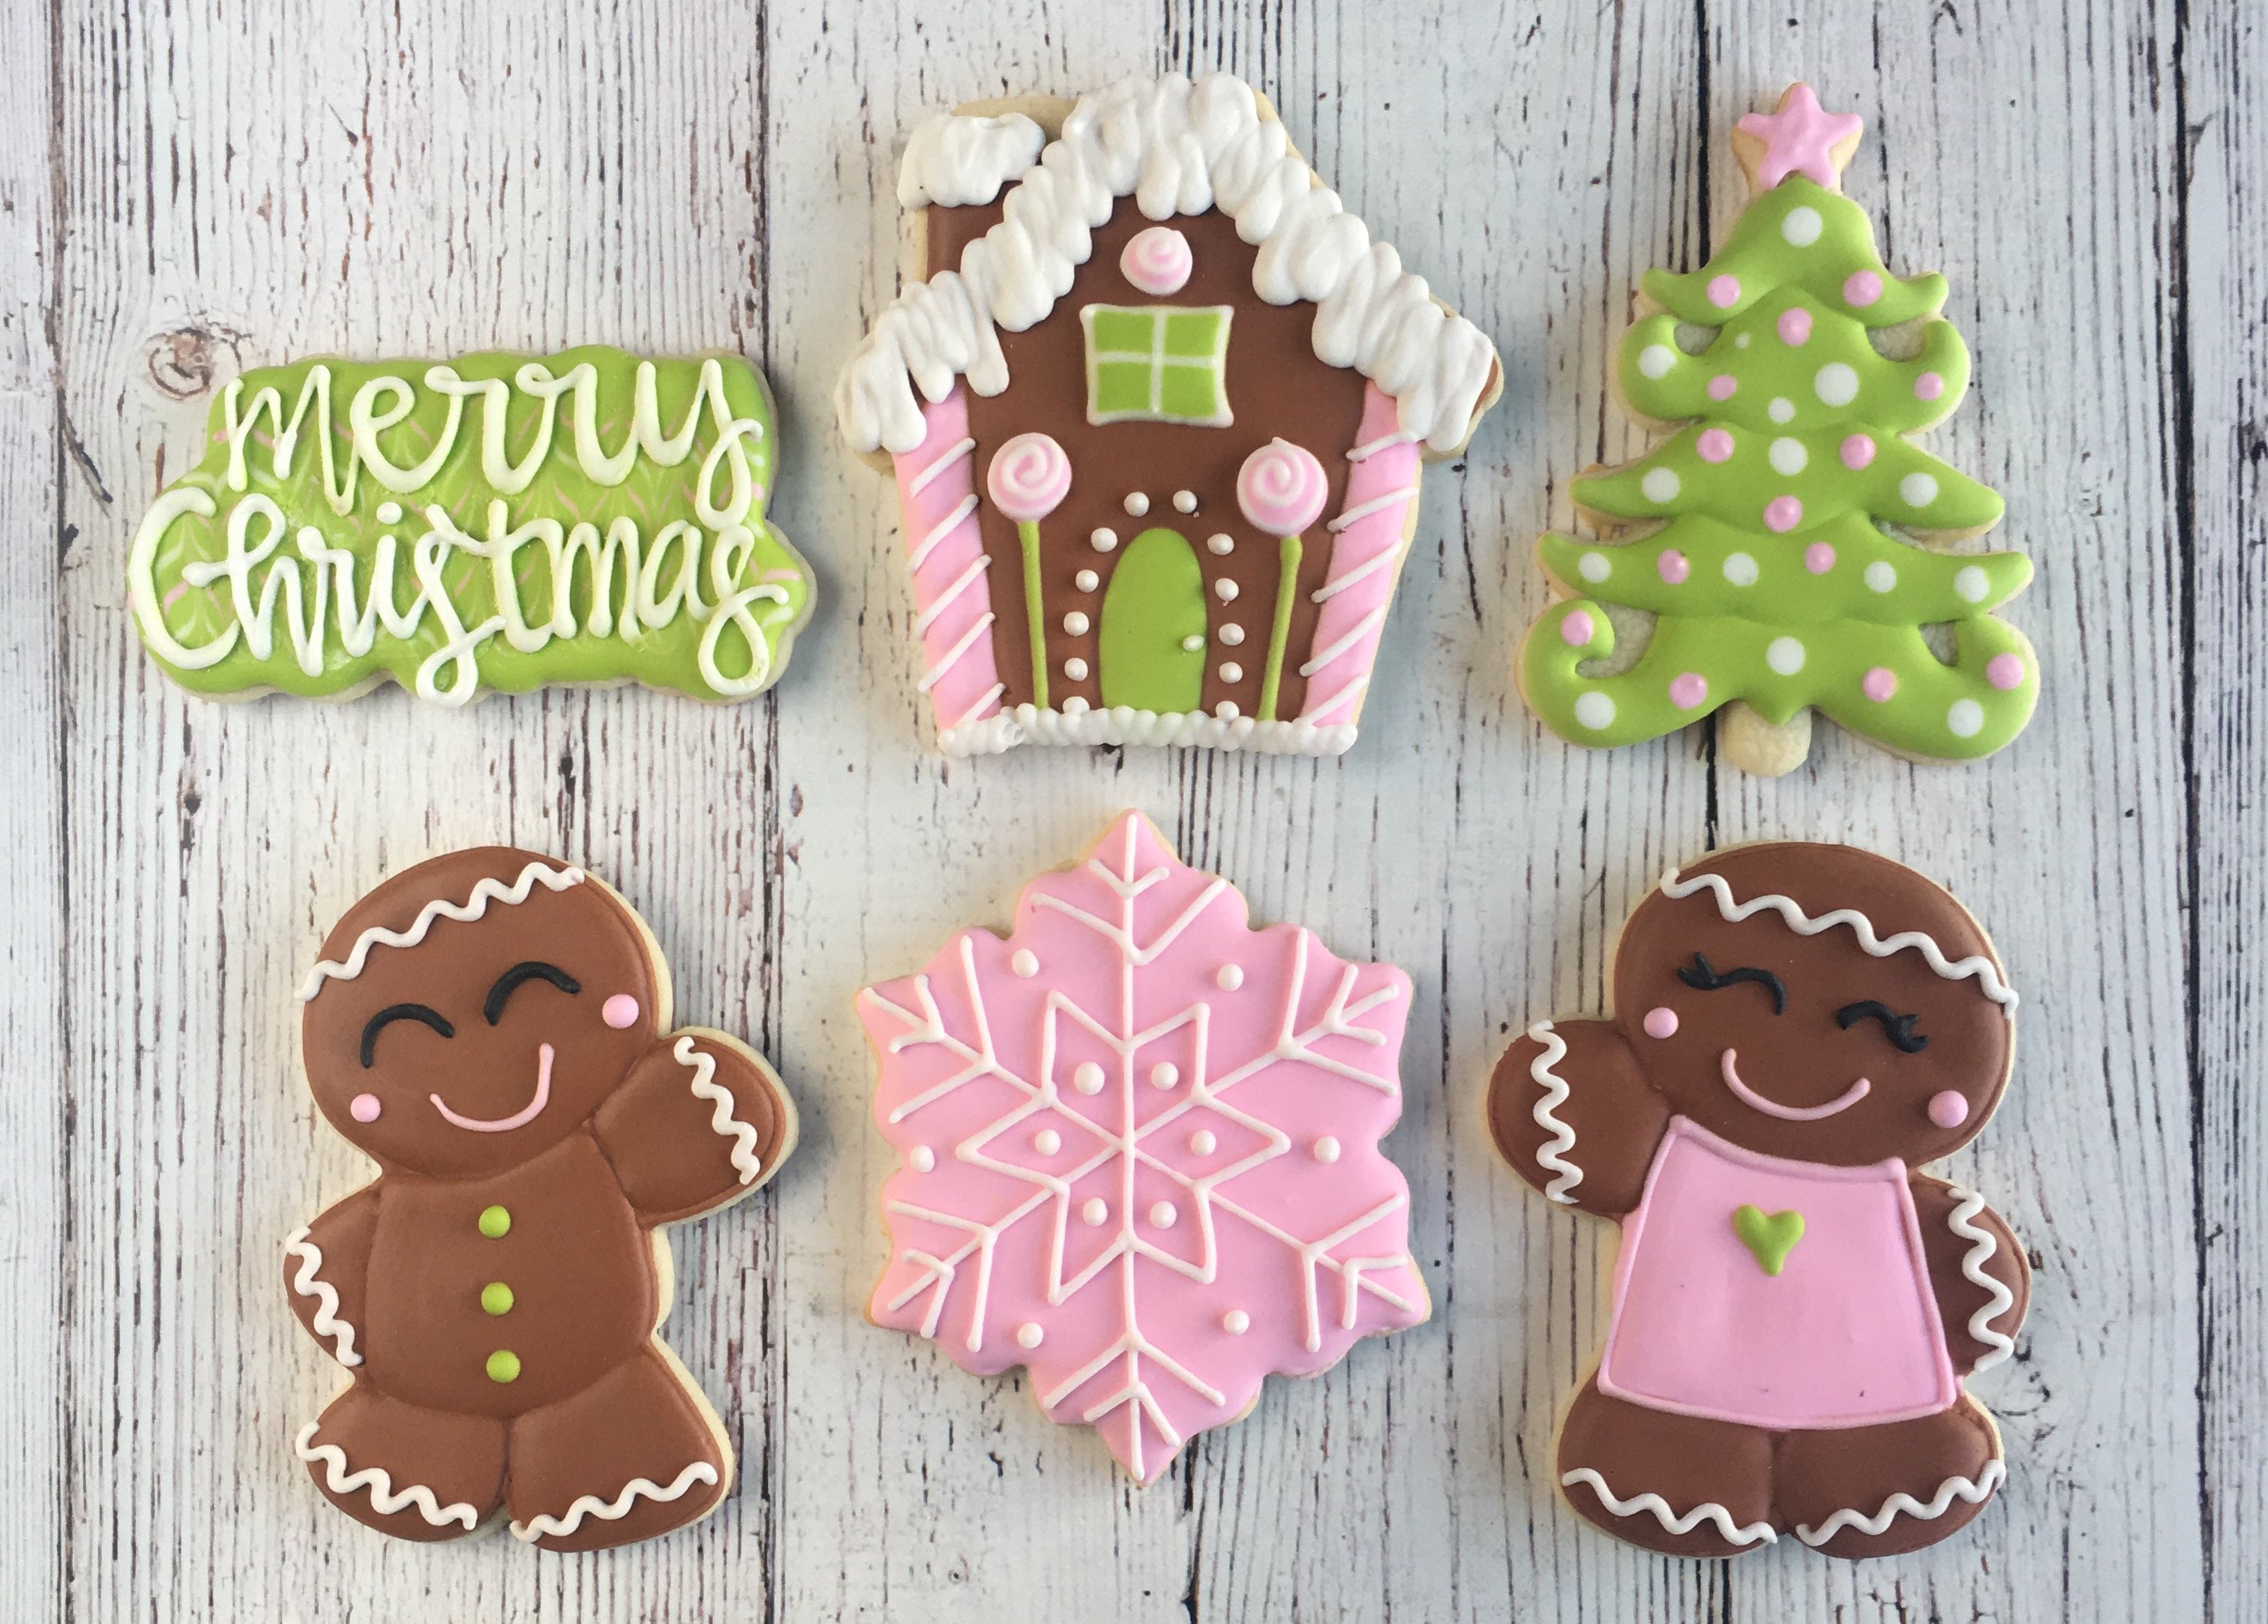 Dec. 18: Holiday Cookie Decorating Class with Marla's Cookies